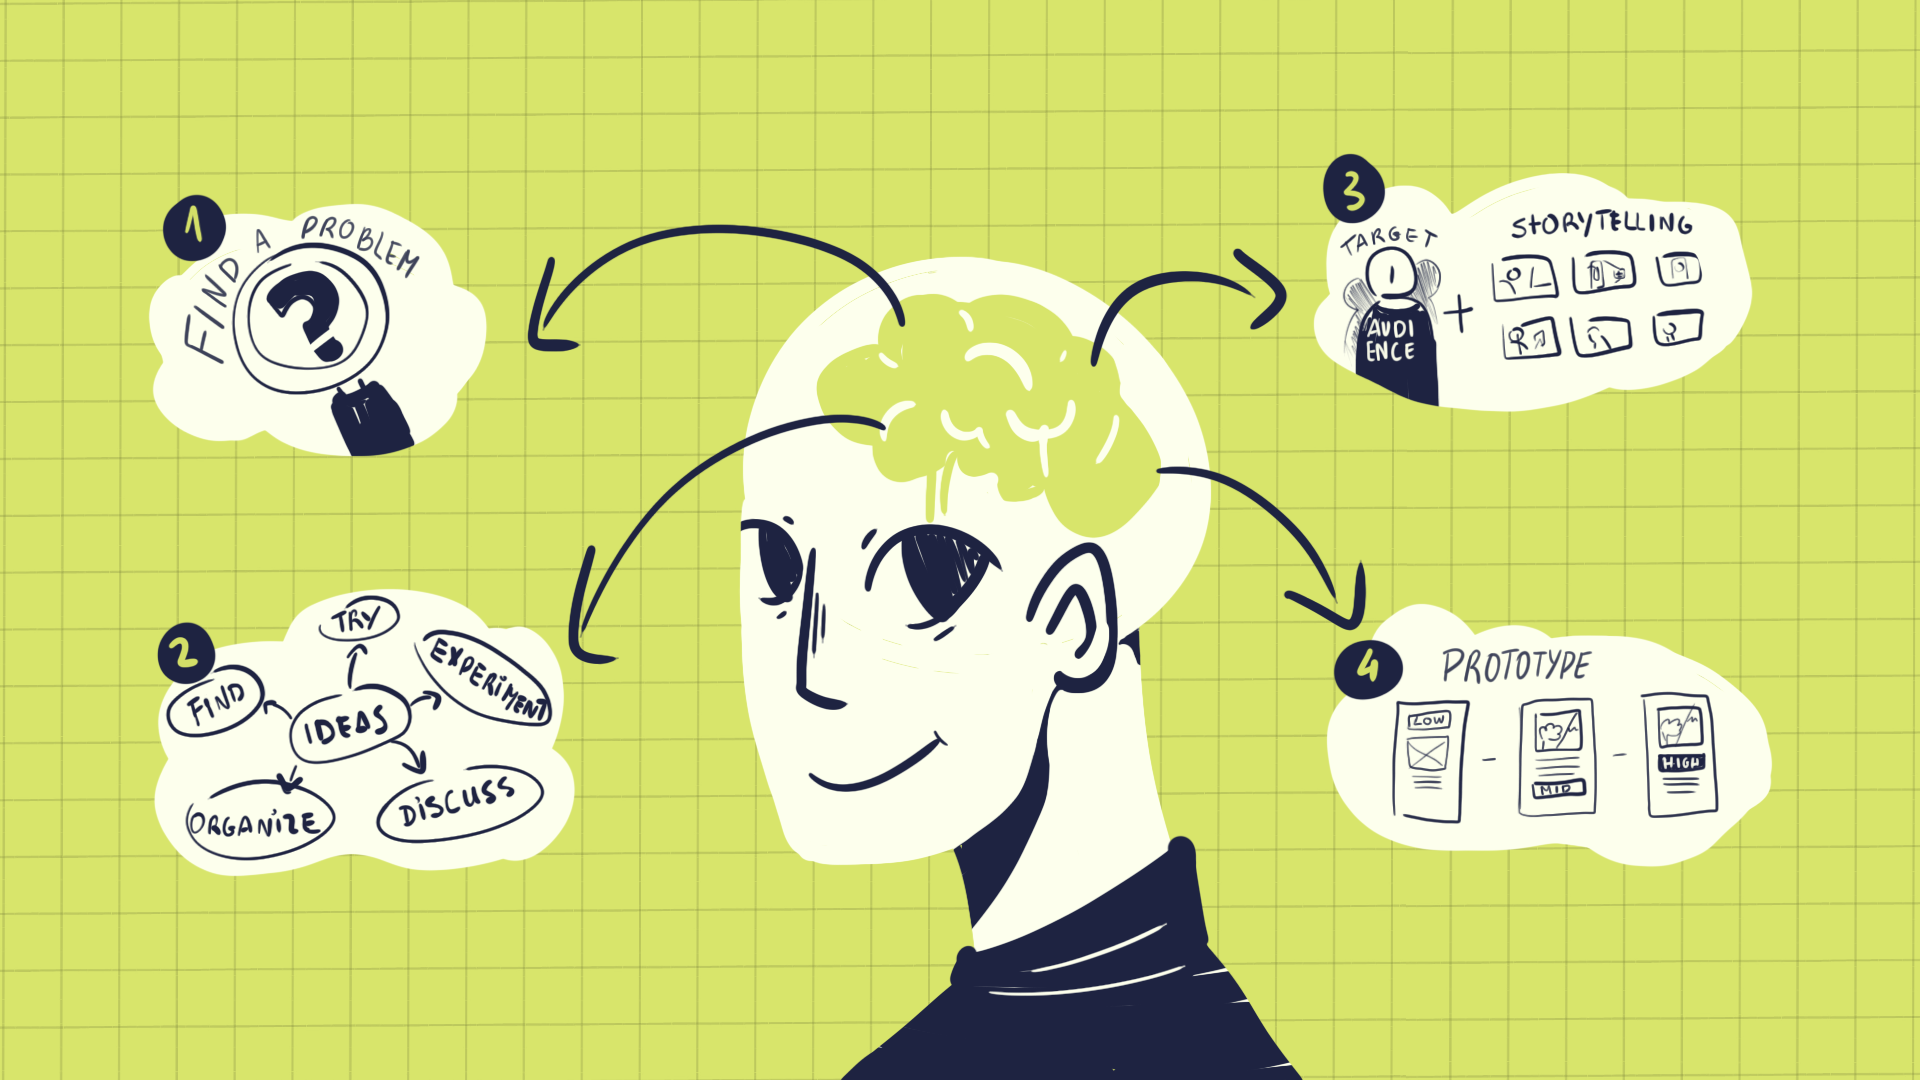 design-thinking-angry-ventures-blog-image-by-ines-borges